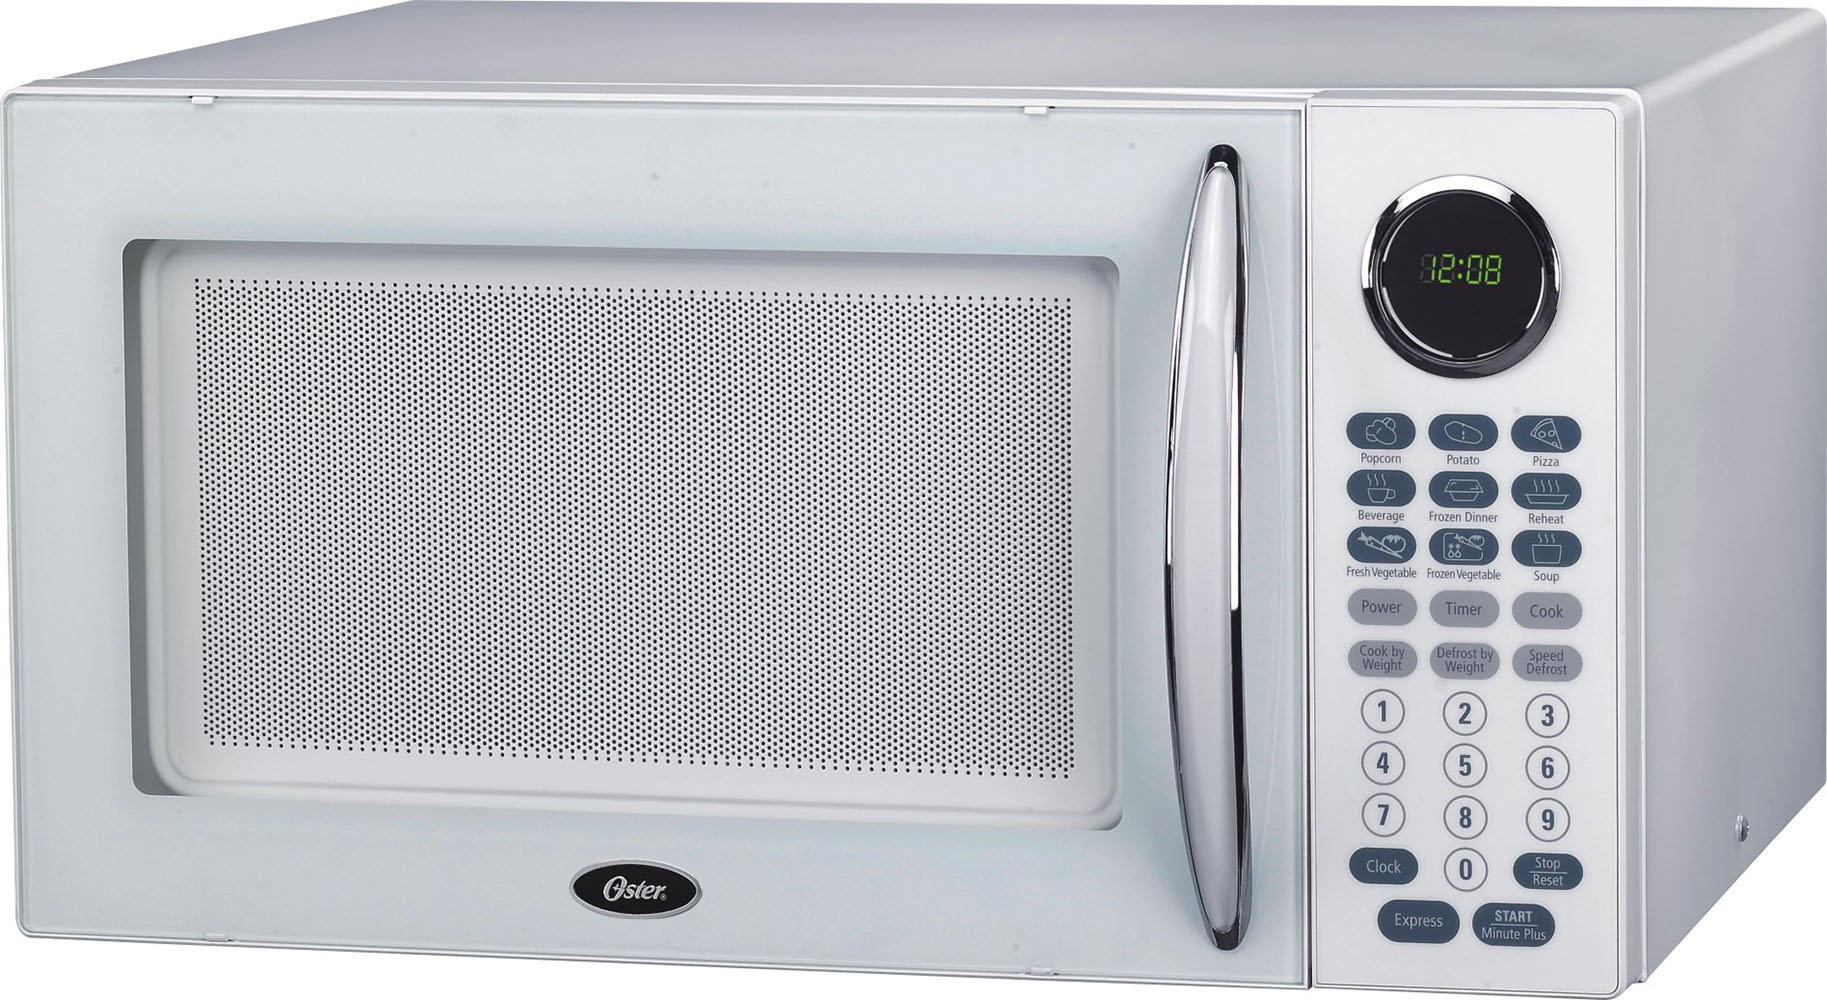 Oster OGB81101 1.1 Cubic Feet Microwave Oven